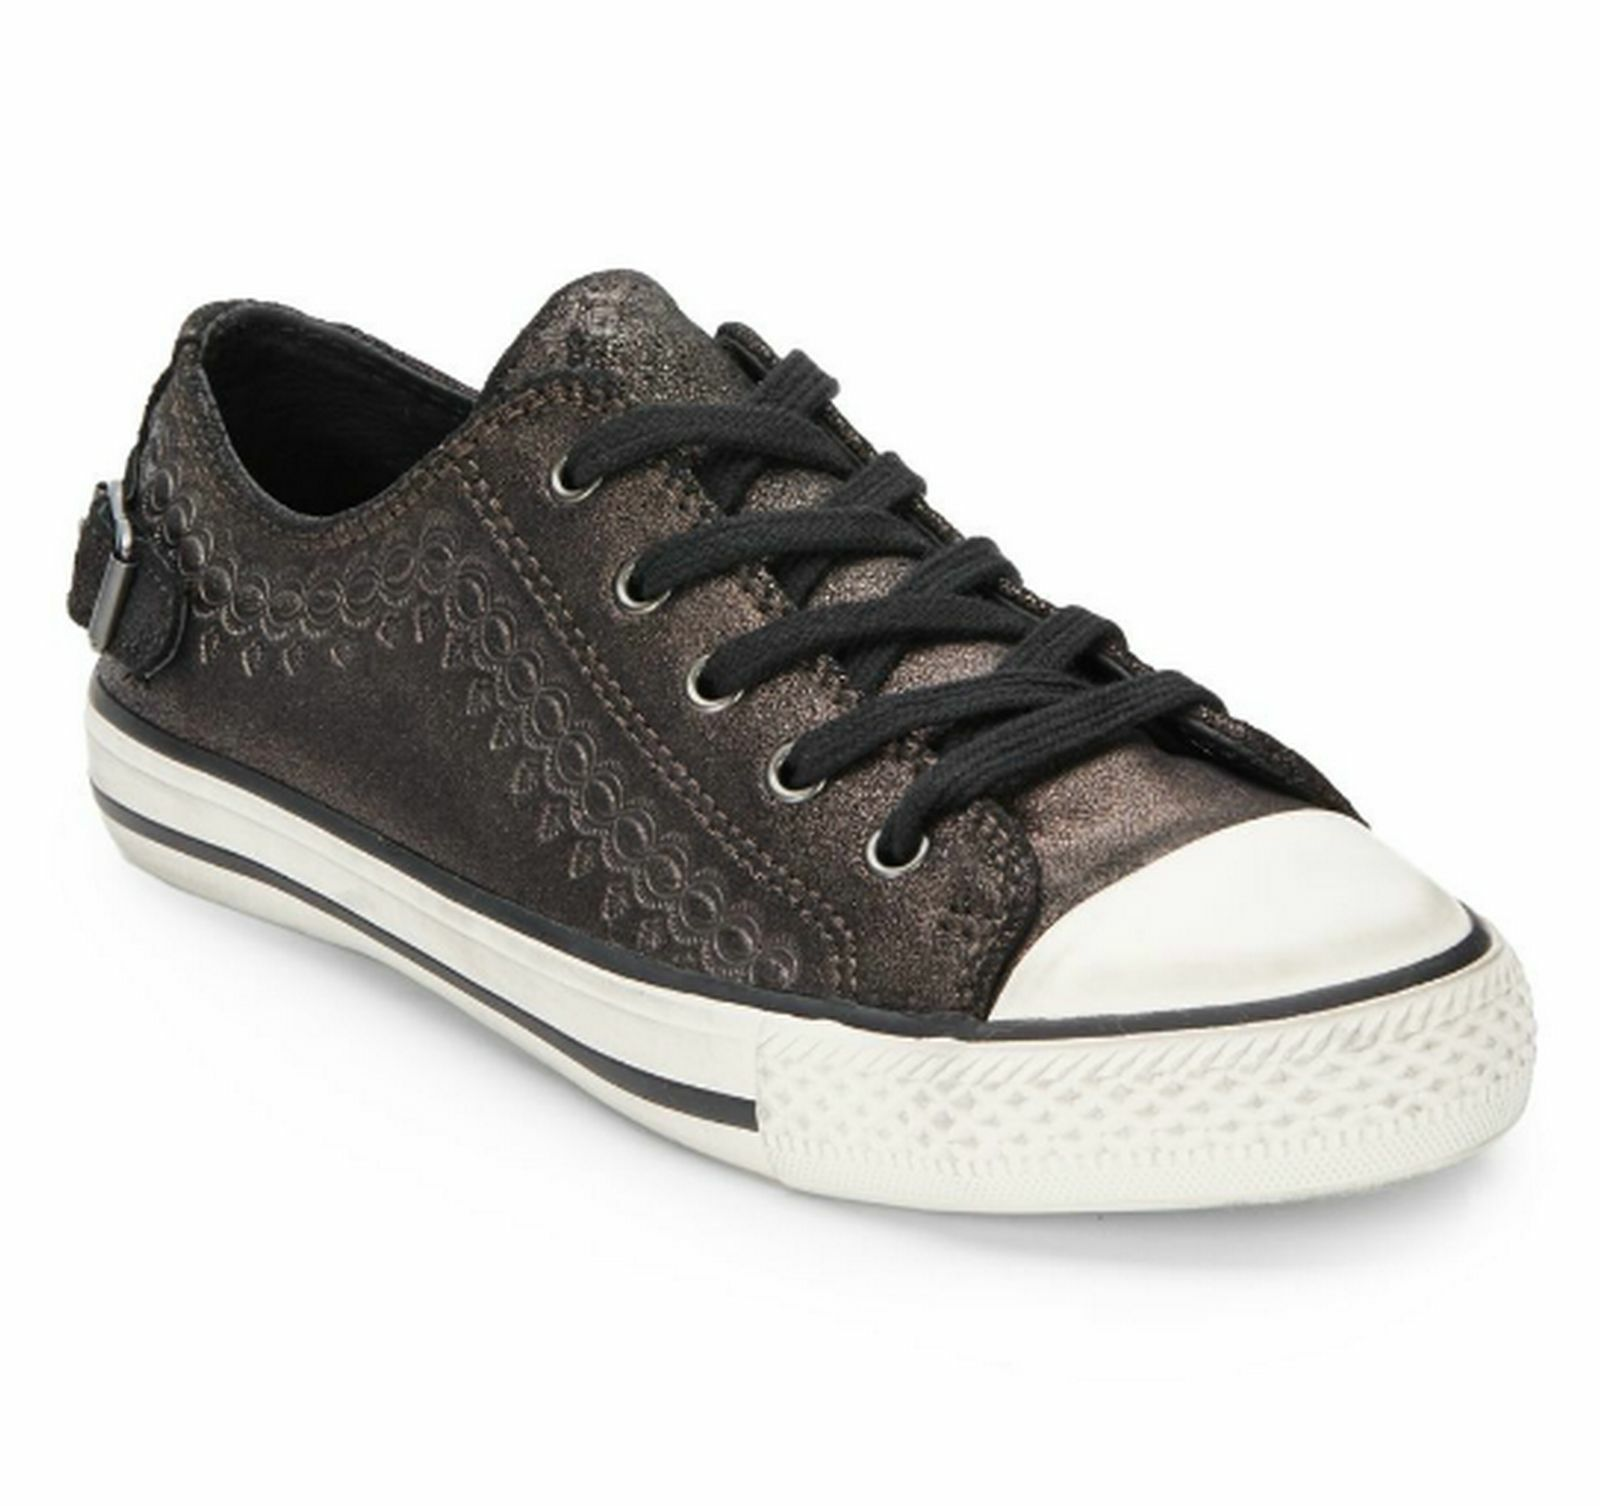 New with Box Ash Leather Sneakers shoes~ Midnight Brown, EUR38